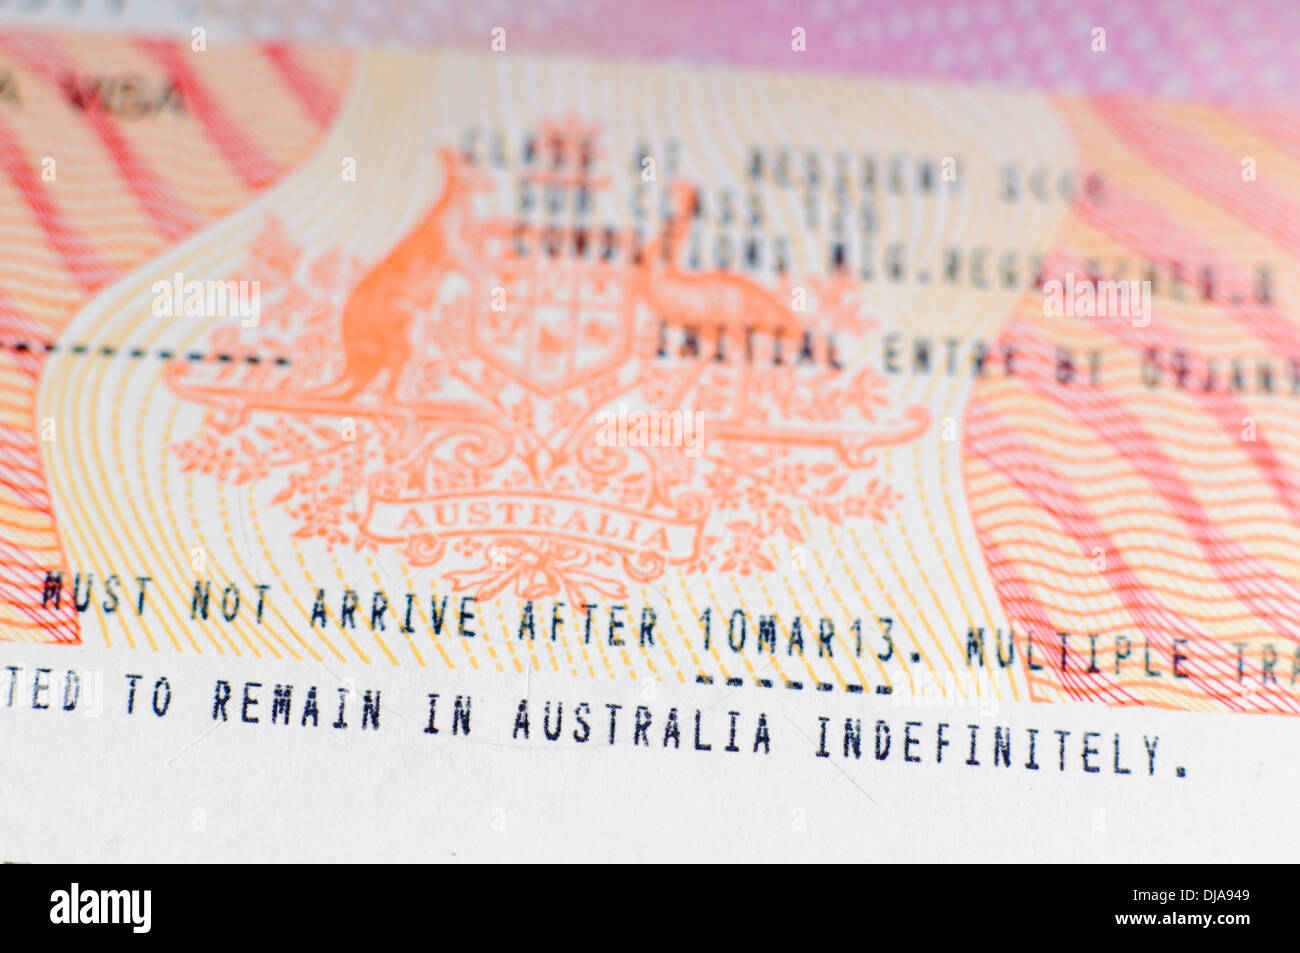 how to let australian immigration know about the new passport